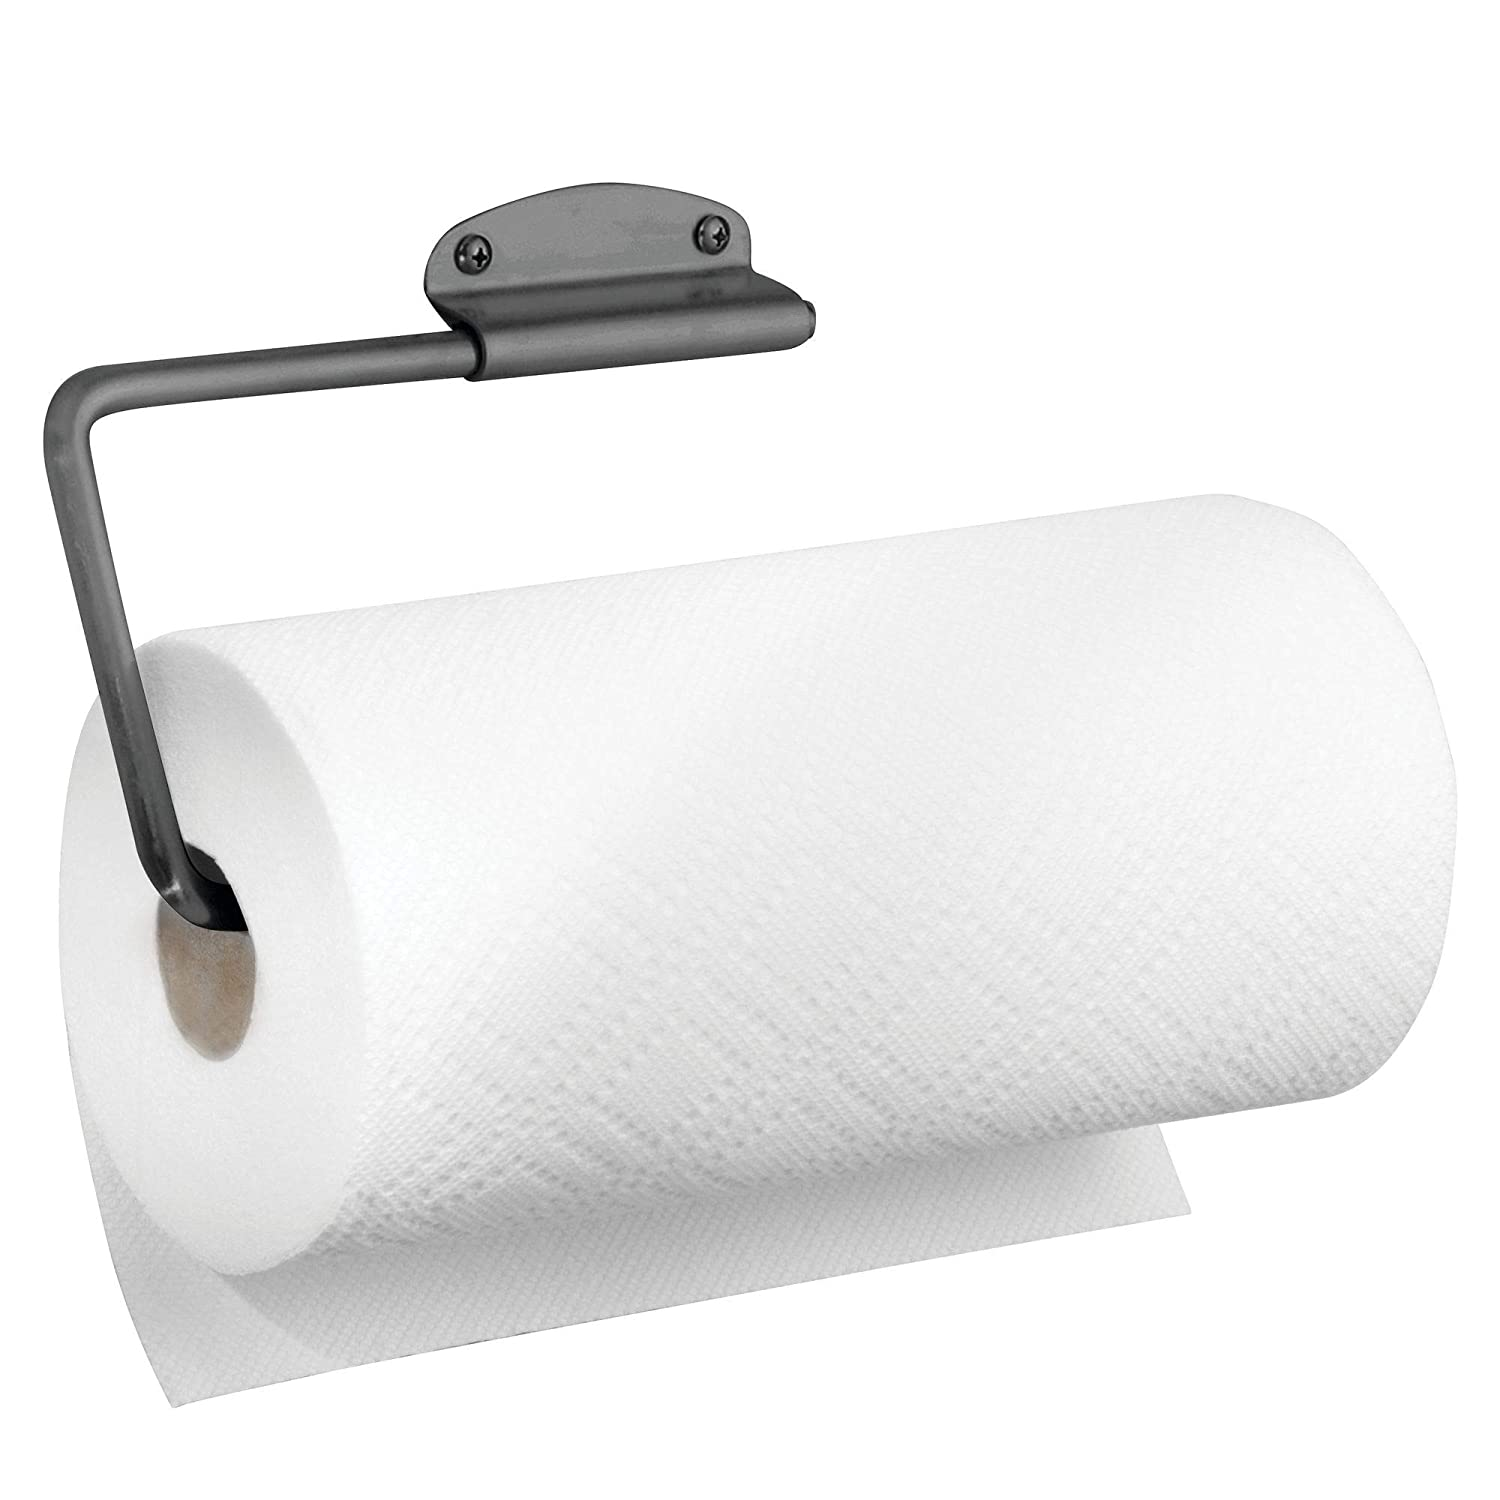 mDesign Metal Wall Mount Paper Towel Holder & Dispenser, Mounts to Walls or Under Cabinets - for Kitchen, Pantry, Utility Room, Laundry and Garage Storage - Holds Jumbo Rolls - Graphite Gray